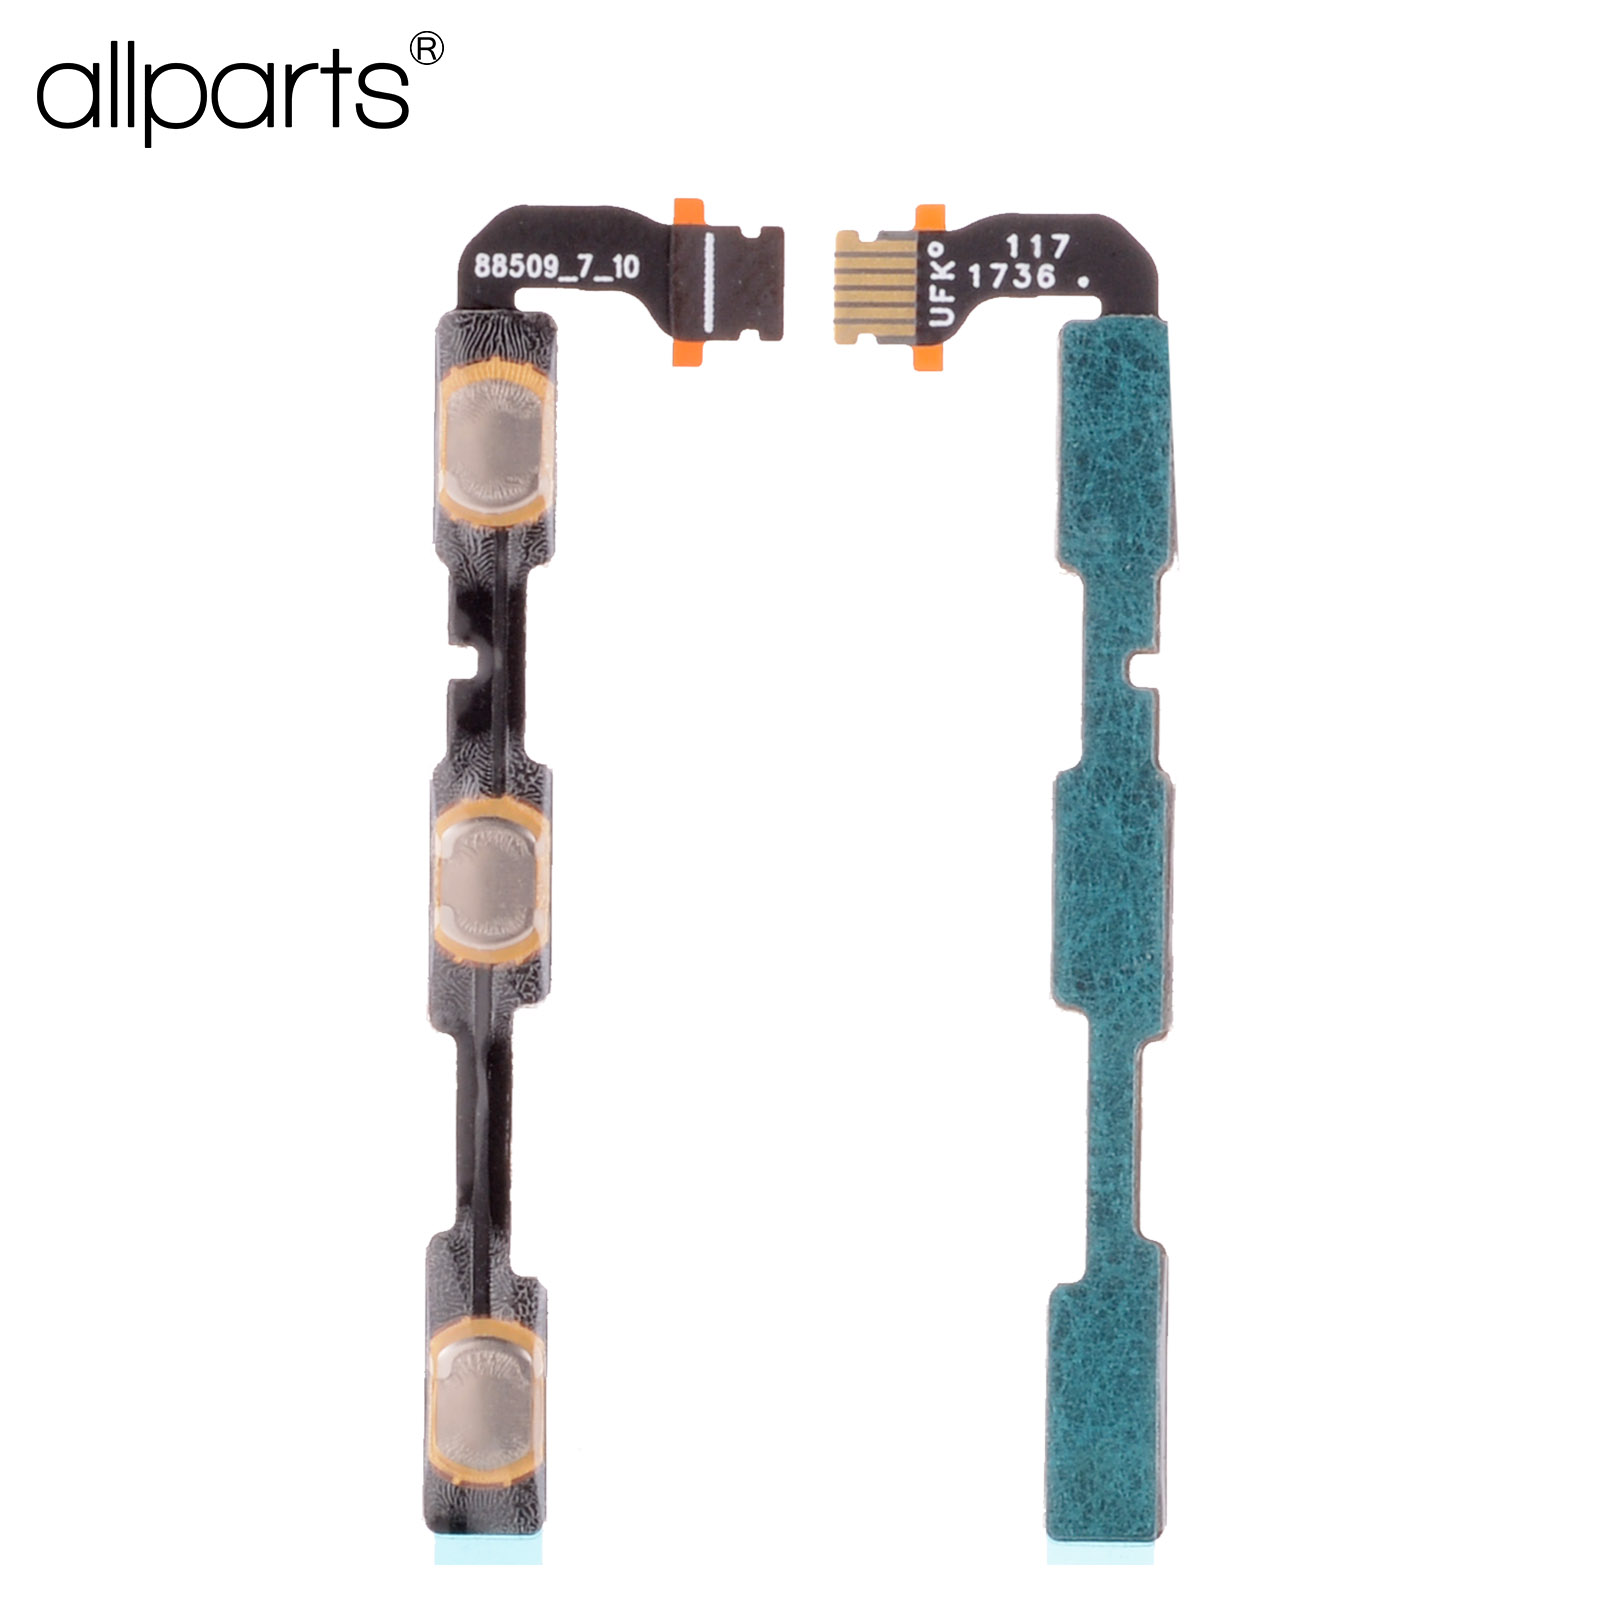 Volume Button Power Switch On Off Button For Xiaomi Redmi 4x Flex Cable Power Volume Buttons